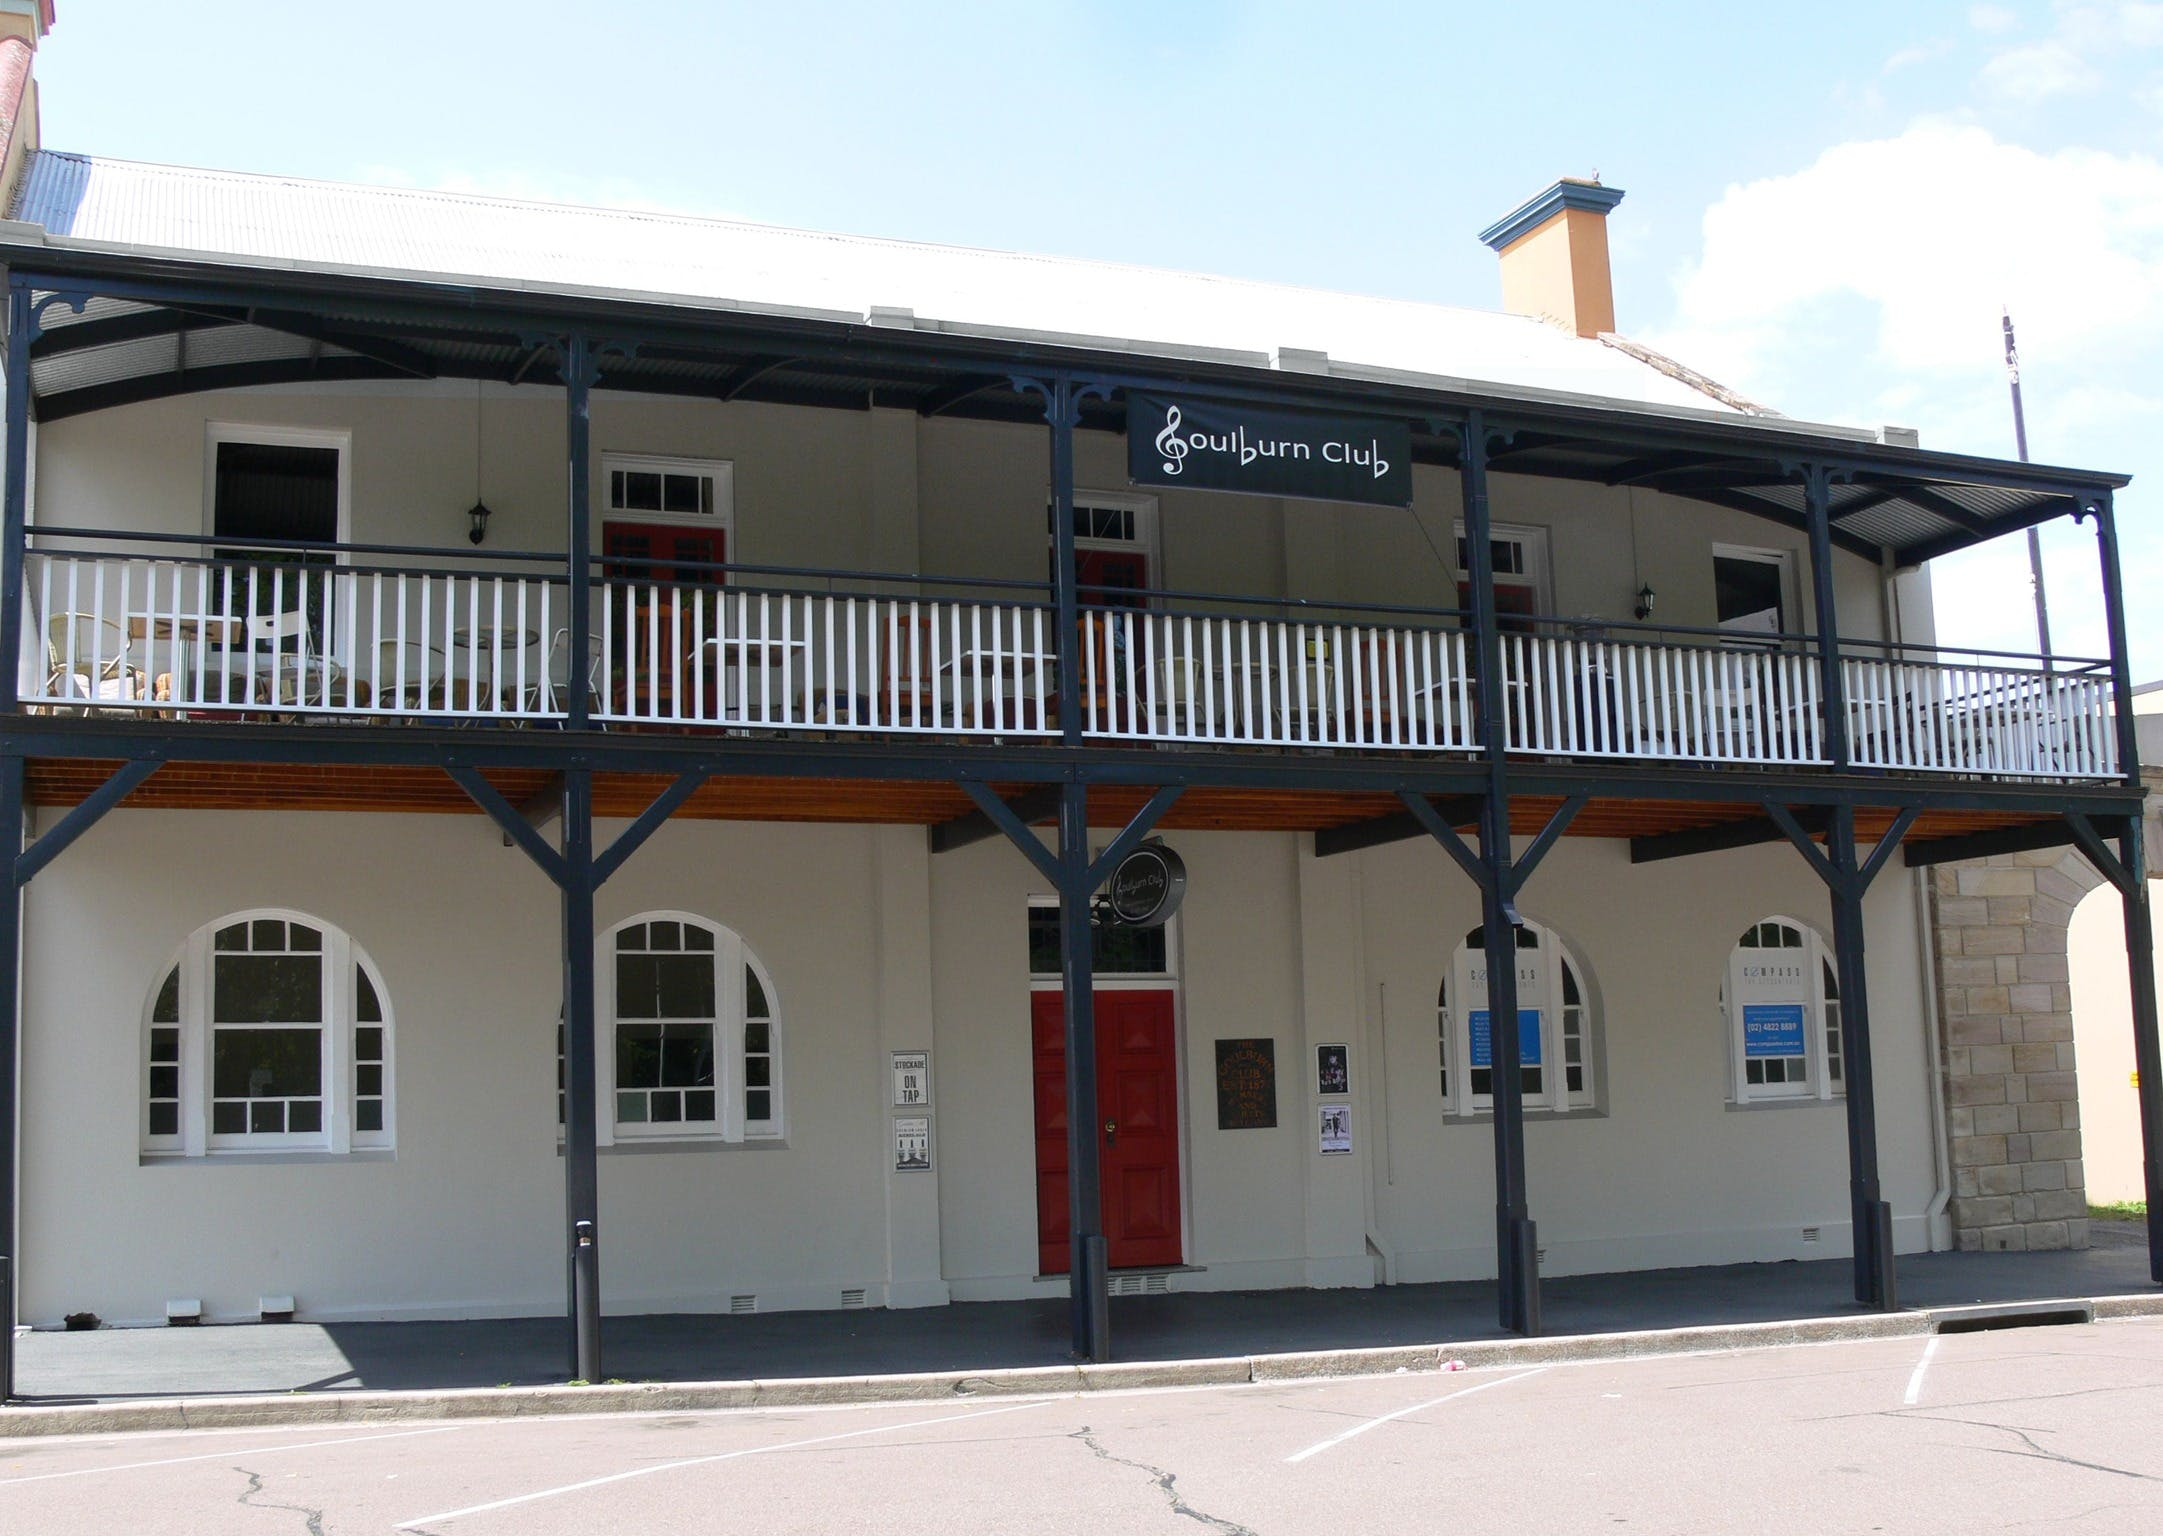 Open Mic Night at the Goulburn Club - Accommodation Mt Buller